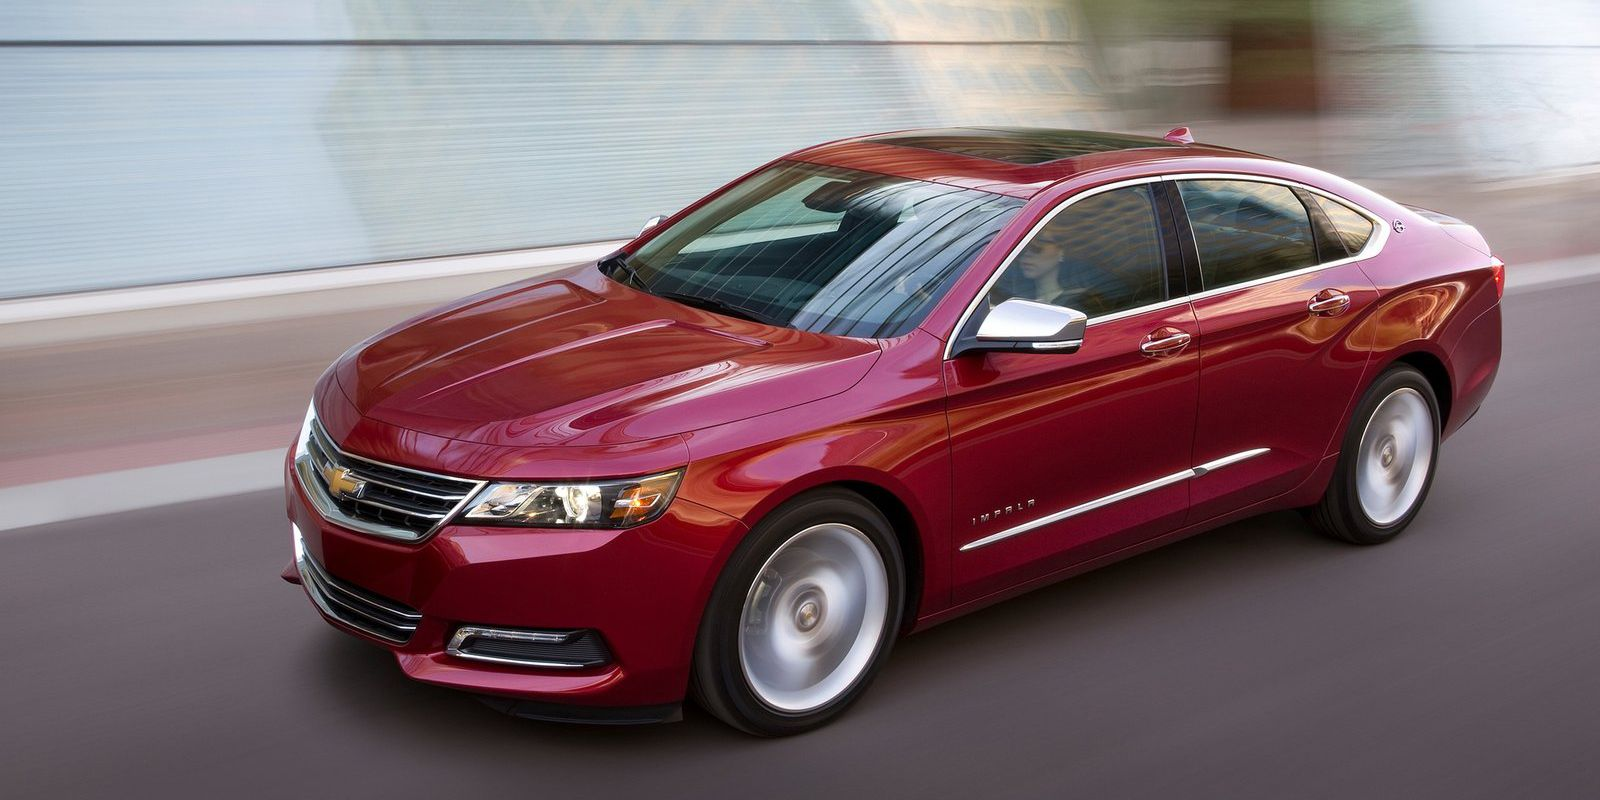 You mostly see Impalas parked in front of the Piccadilly or on I-95 making another run between Florida and New York, but despite the Impala's popularity with the elderly, don't be mistaken—the V6 version is quick. It will hit 60 mph nearly a half second faster than the Mustang. Maybe that's why Grandpa loves his new Impala so much.